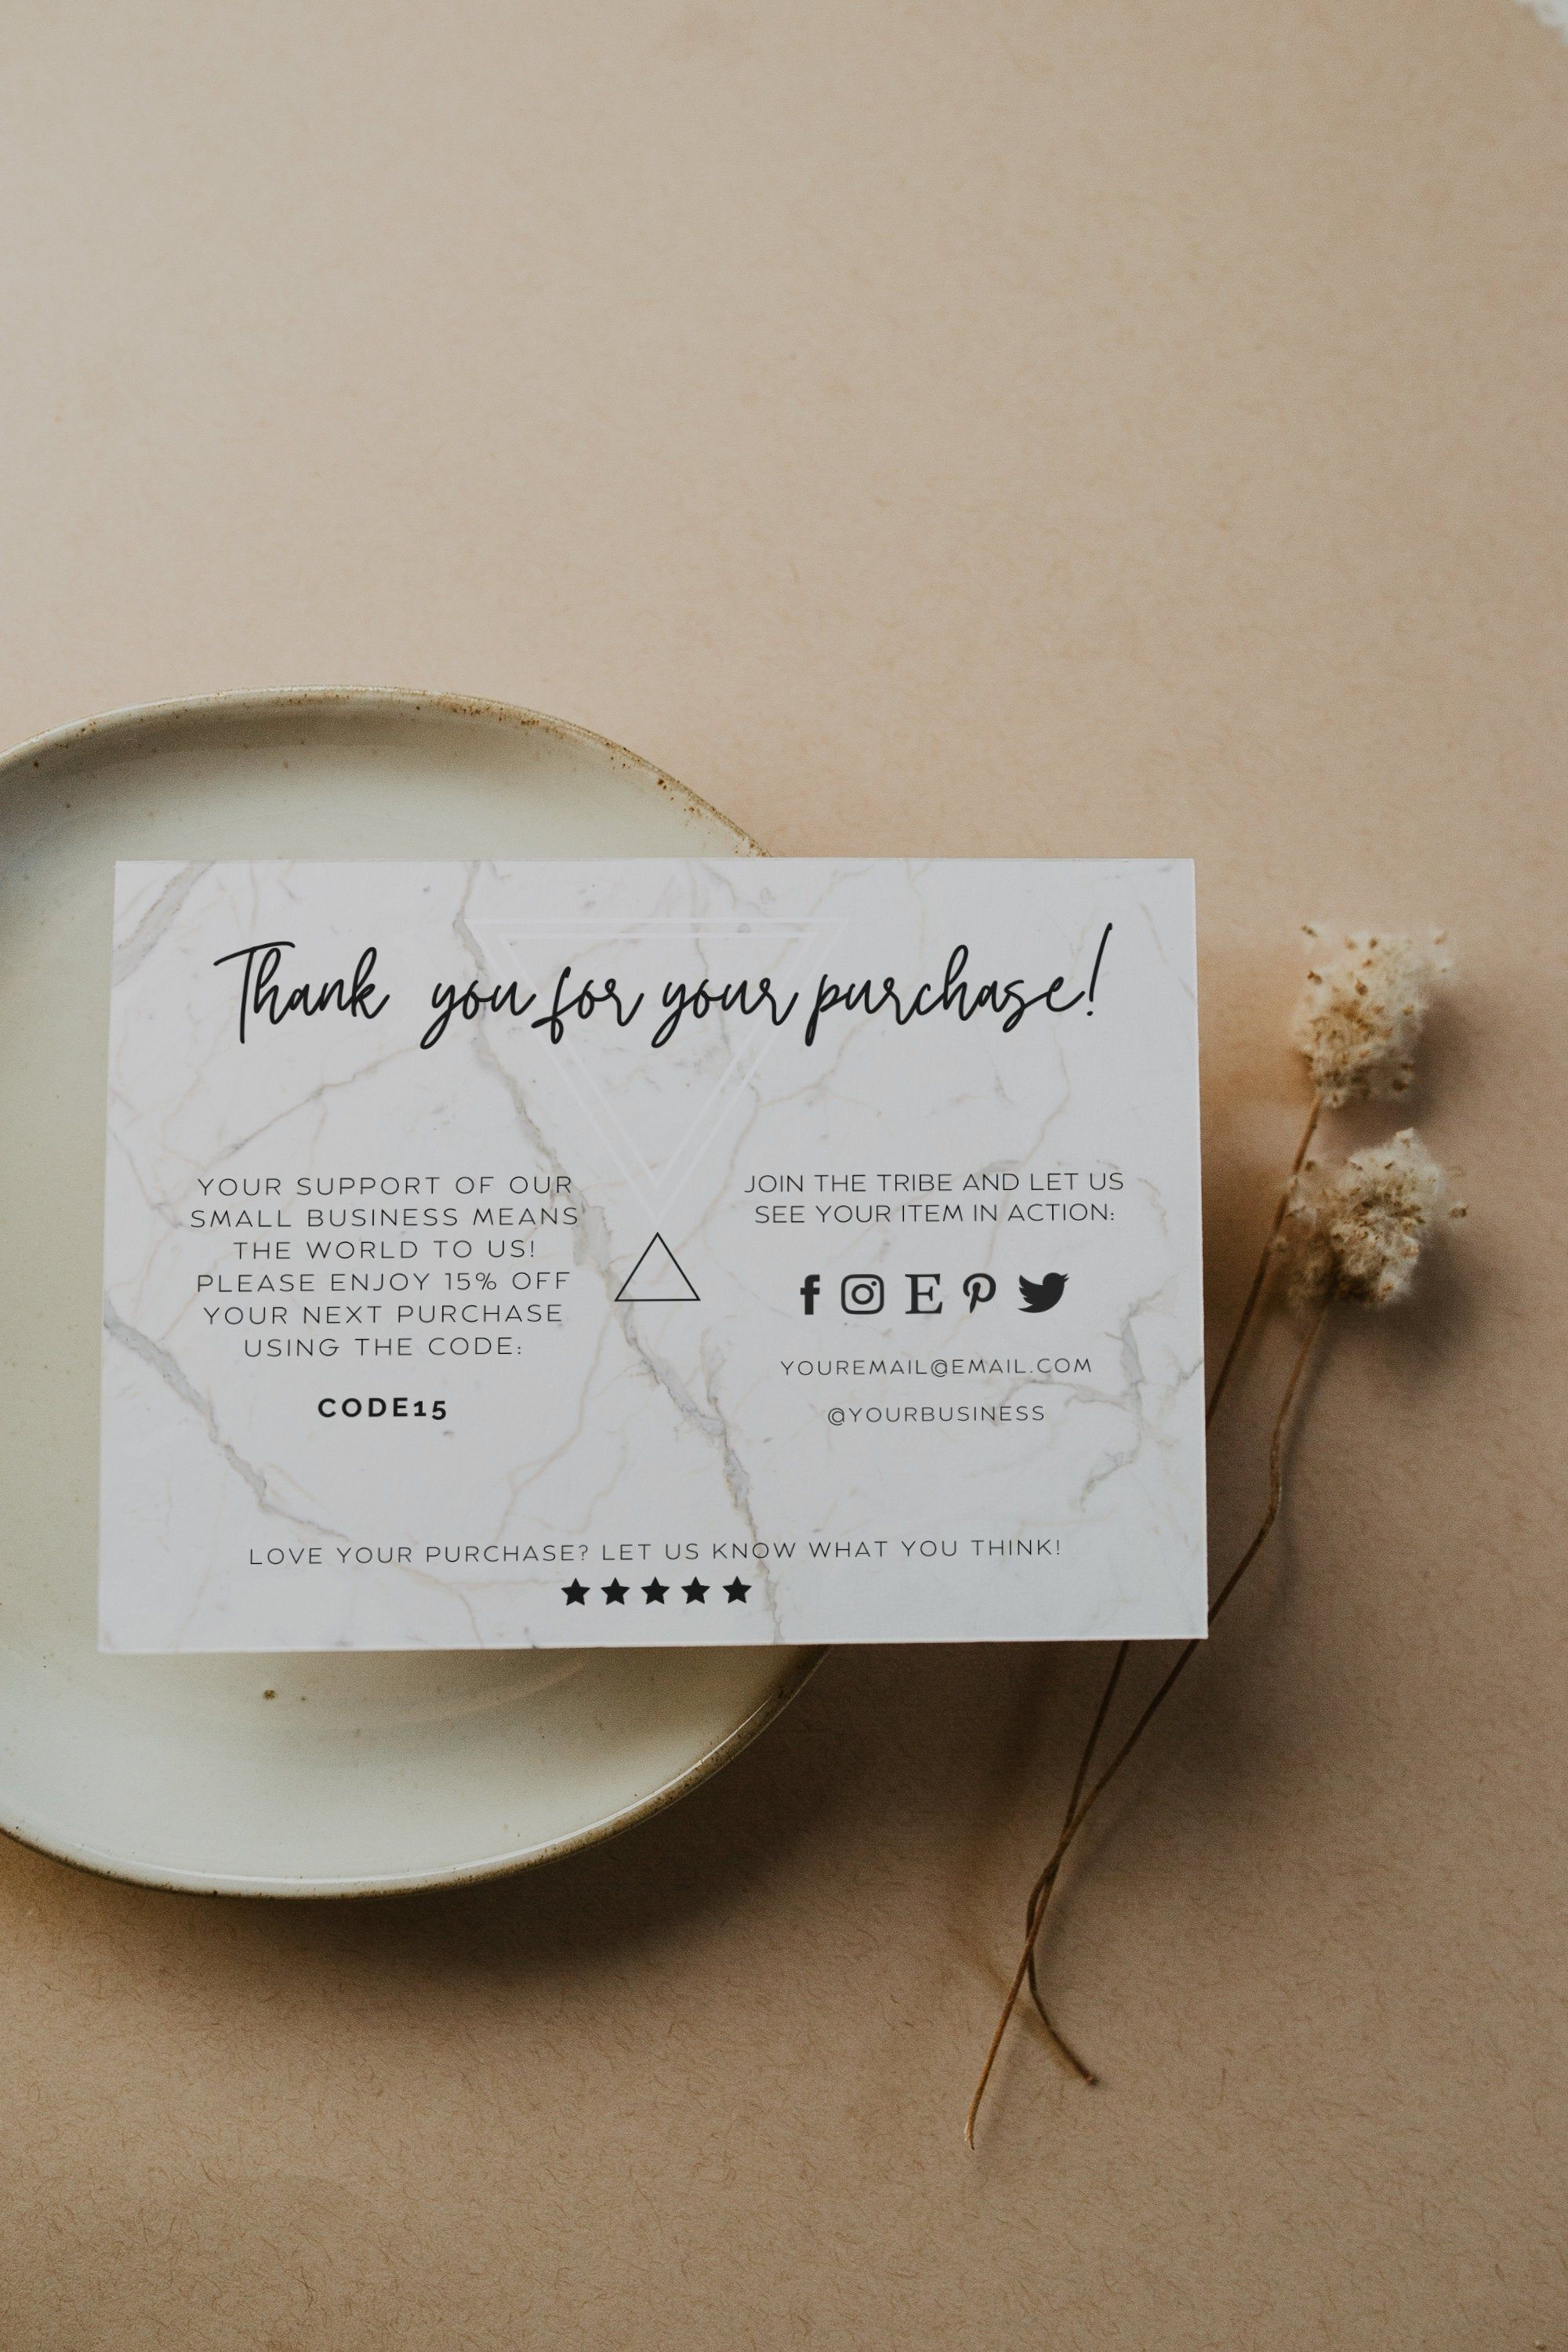 Diy Business Thank You Card Editable Printable Candle Care Card Template Candle Instruction Card Instant Download Ty40 In 2021 Business Thank You Cards Business Thank You Cute Thank You Cards